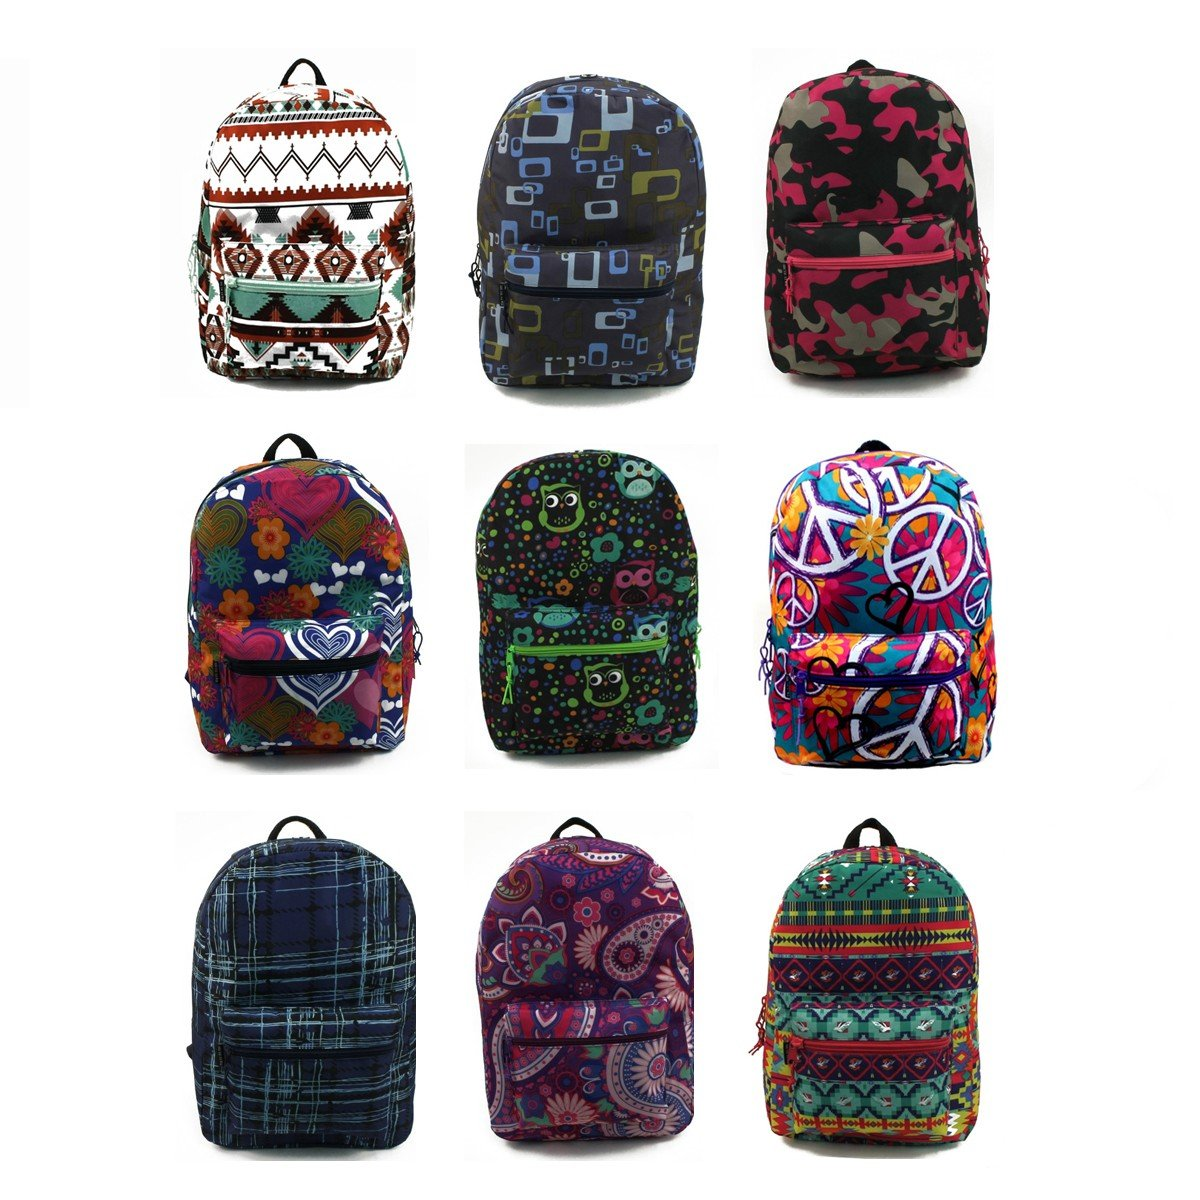 17'' Wholesale Padded Backpacks in Unique Prints - Case of 24